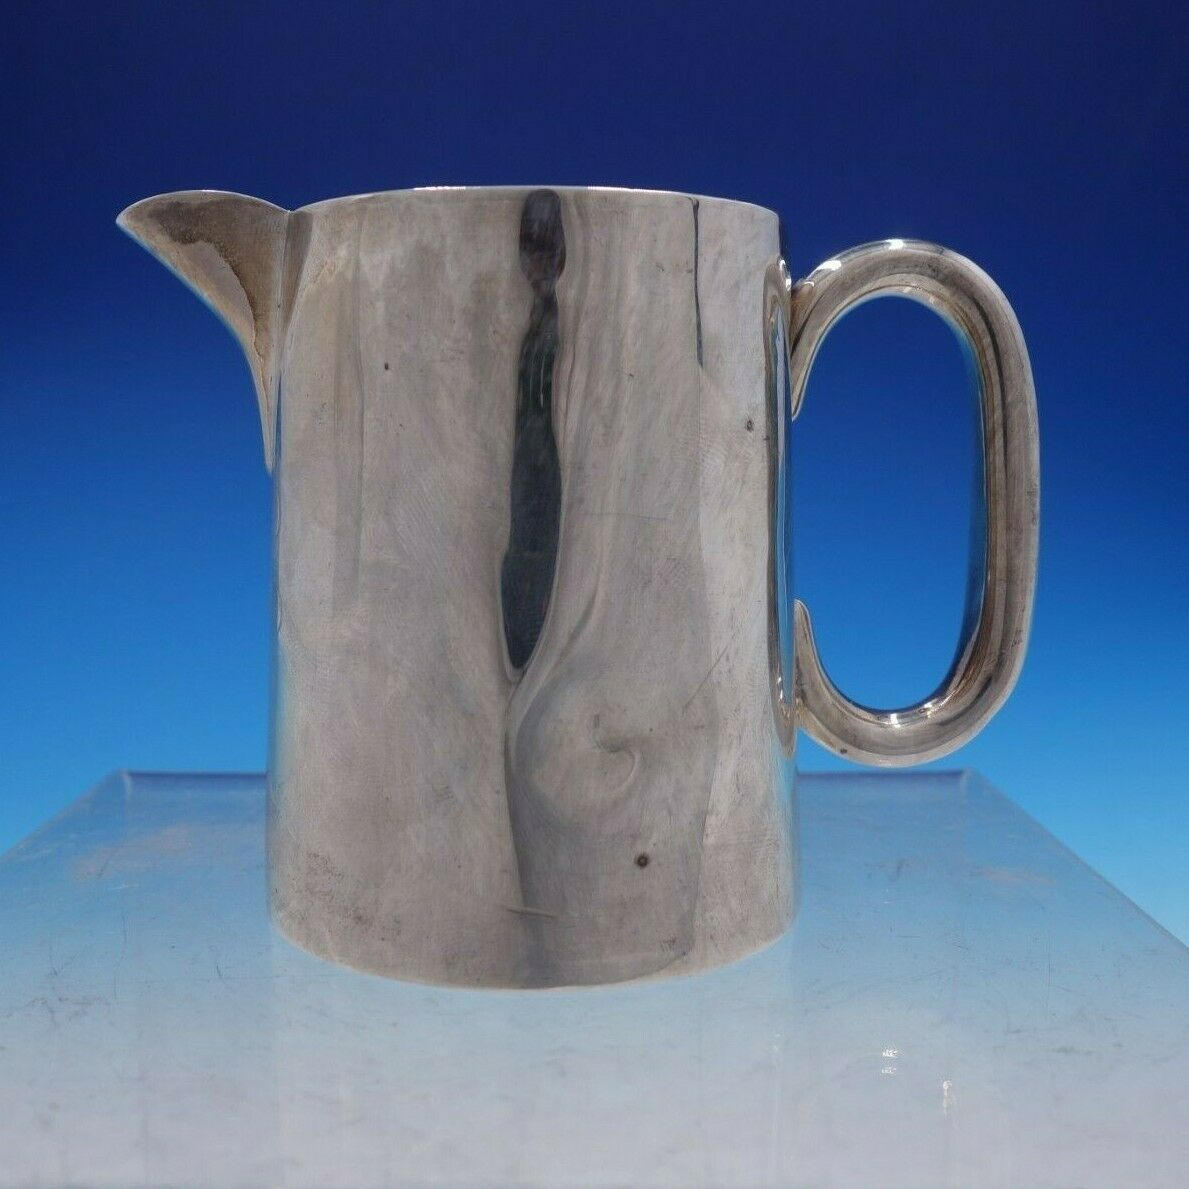 Primary image for Vintage English Silver Creamer with Handle and Spout from Chester (#4242)